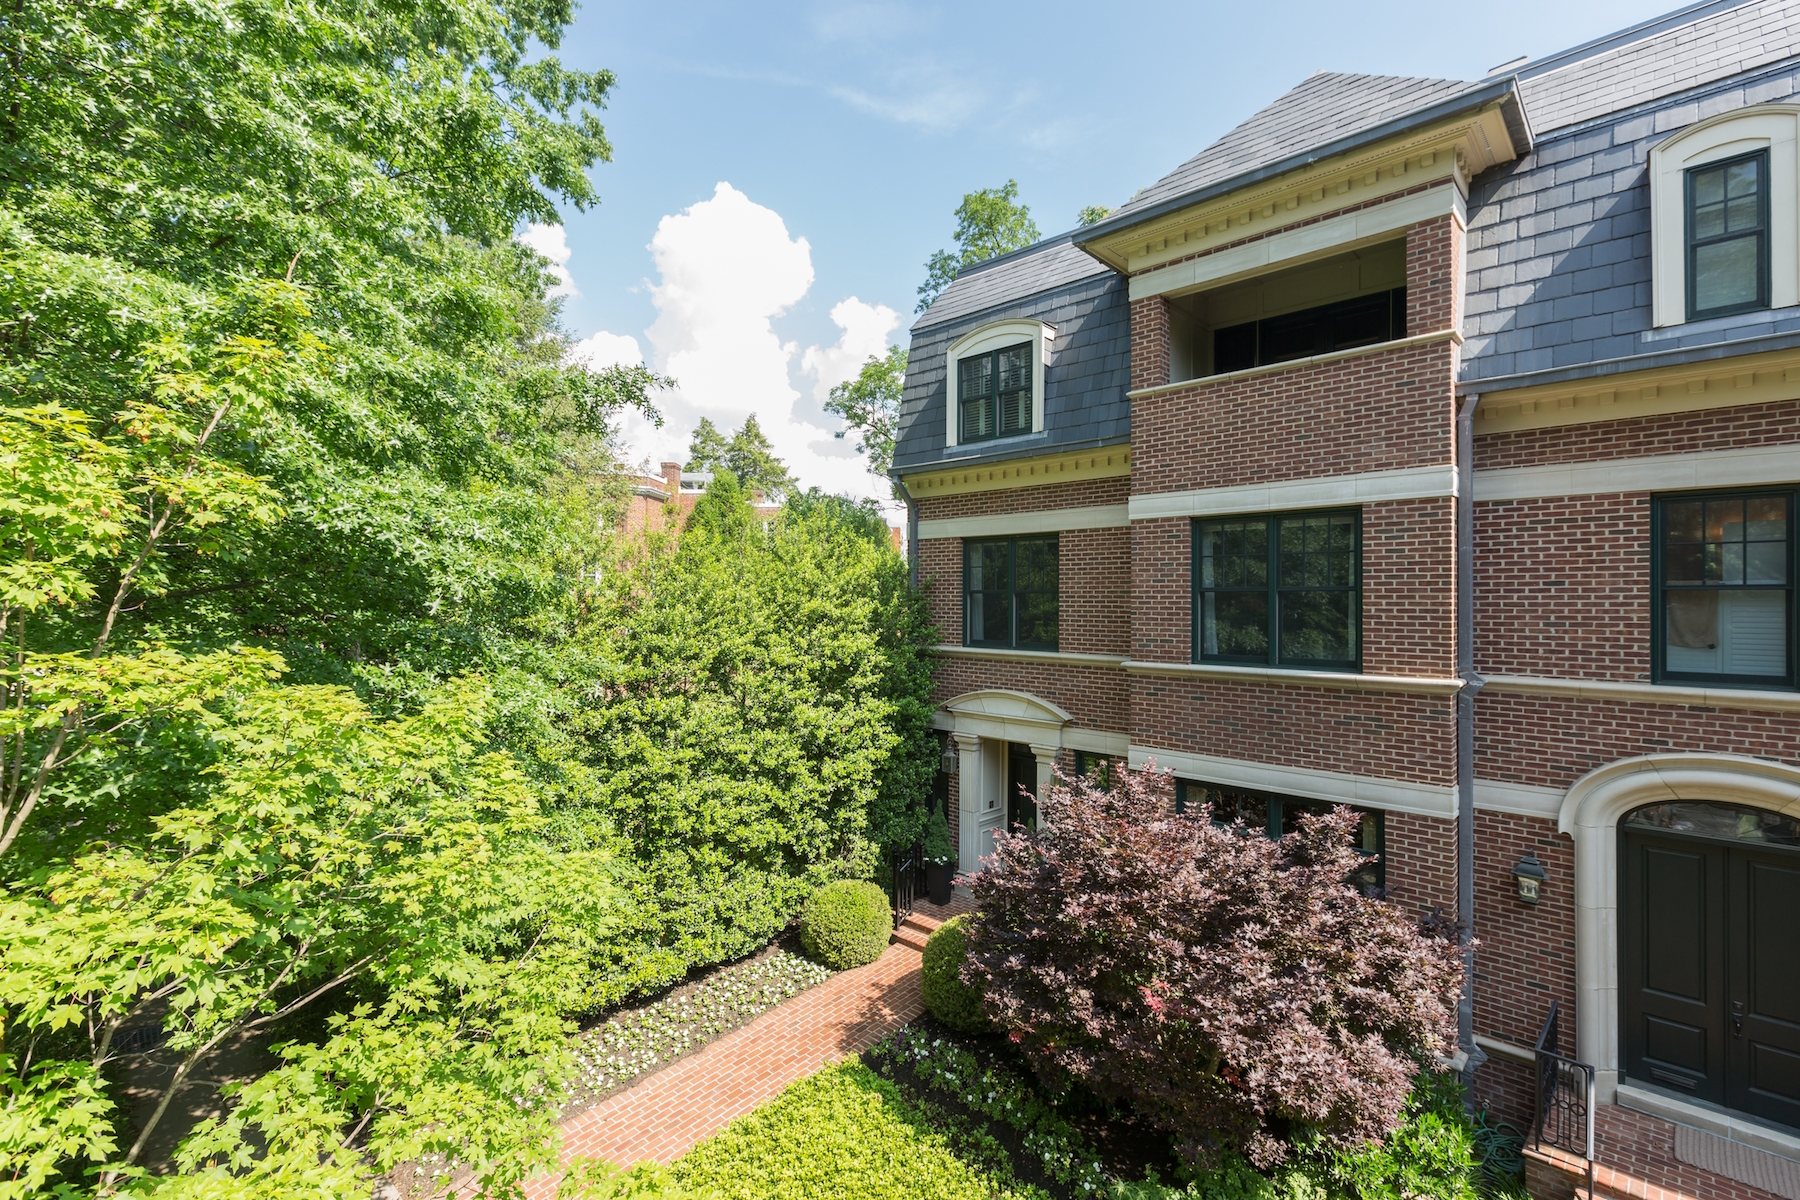 Casa Unifamiliar por un Venta en Woodley 2735 Cathedral Avenue NW Washington, Distrito De Columbia, 20008 Estados Unidos